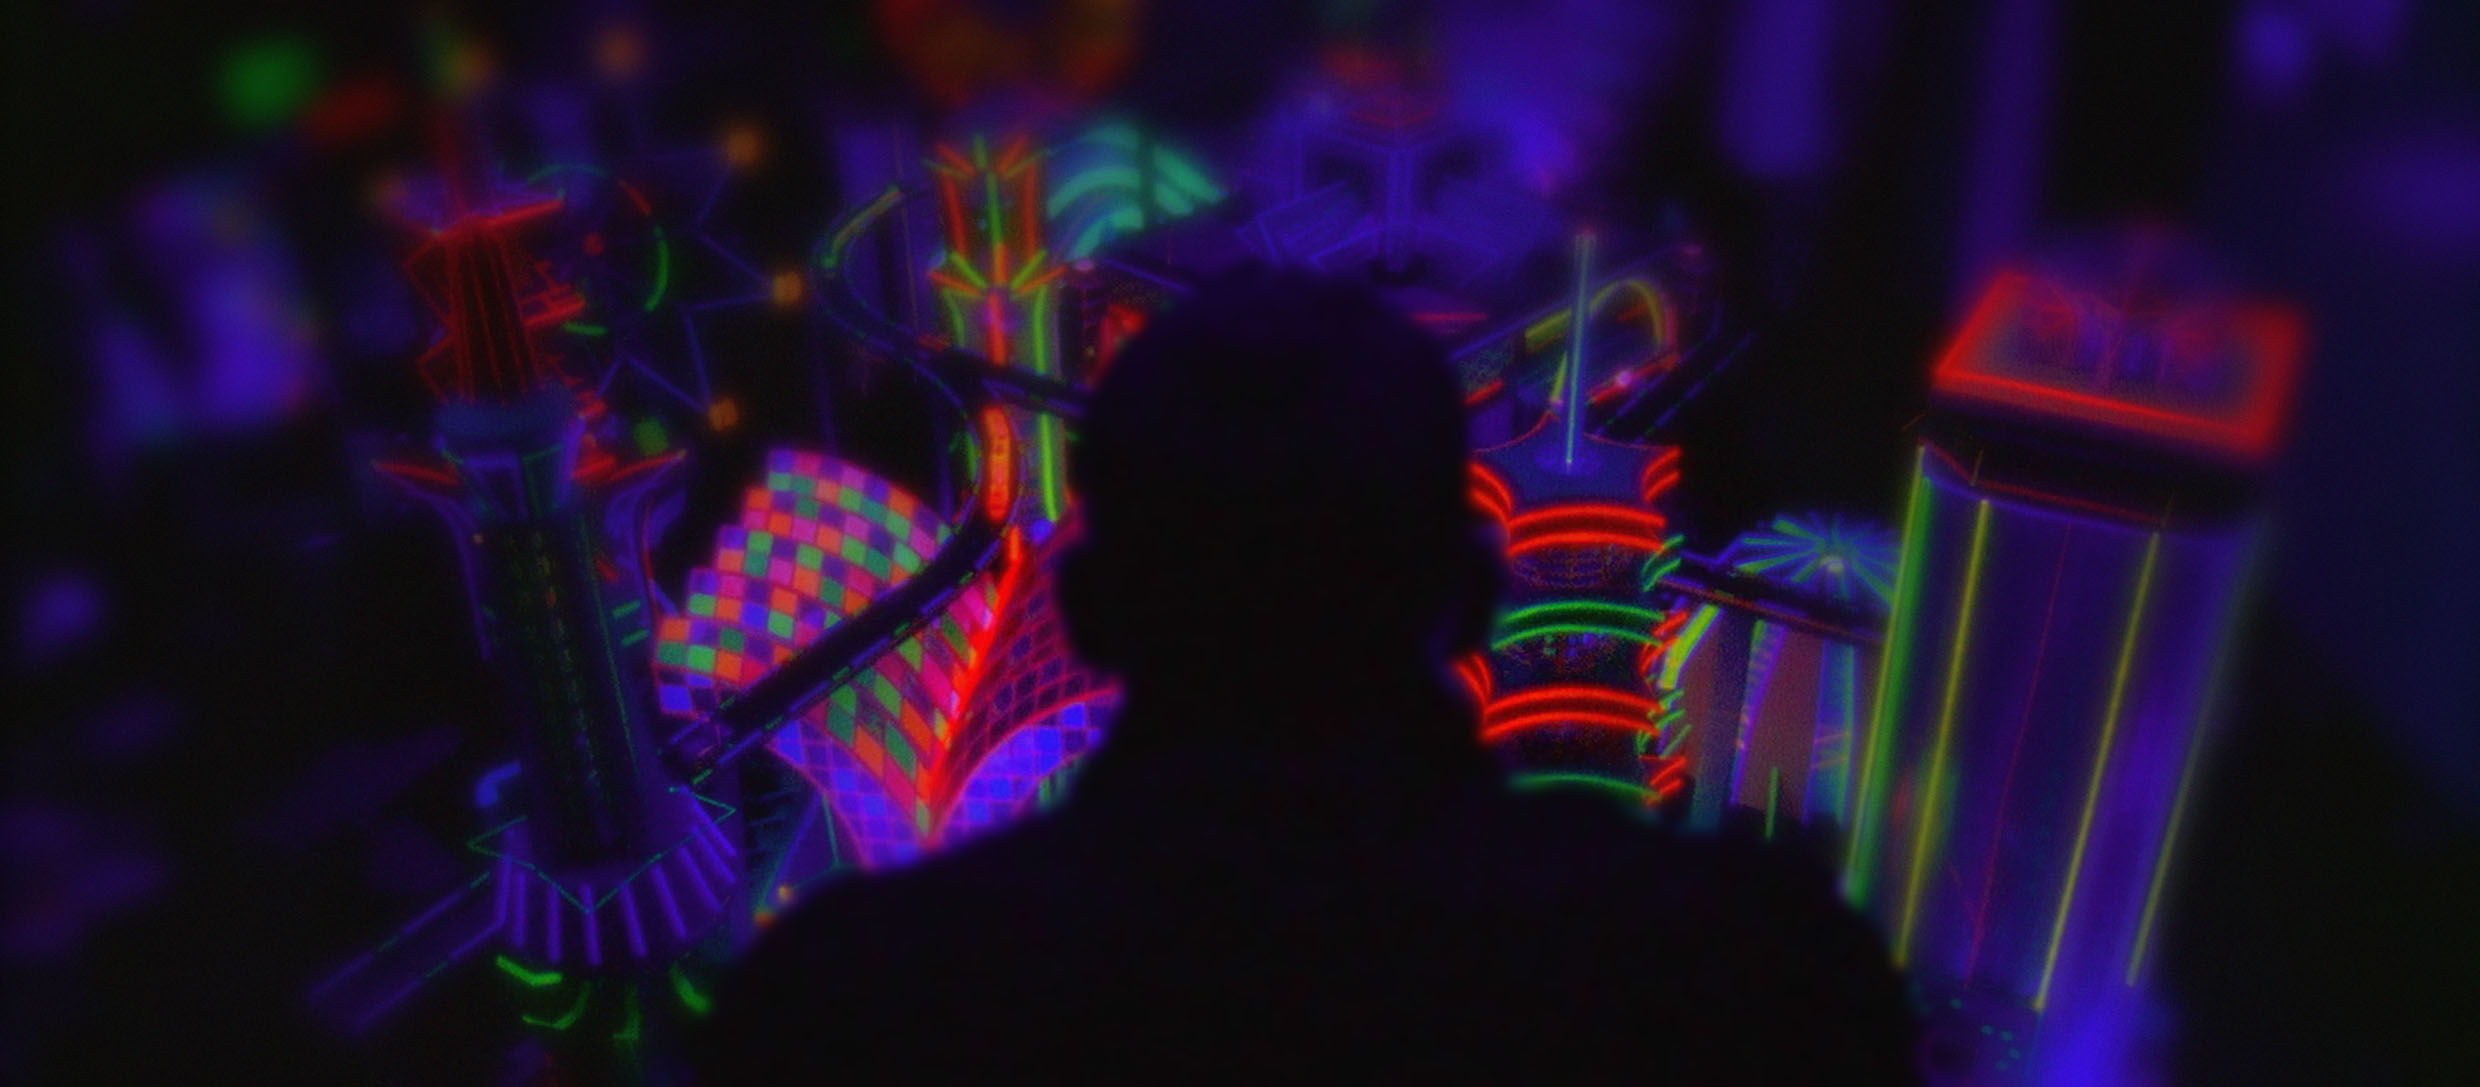 Simple Wallpaper Home Screen Trippy - enterthevoid  Trends_869969.jpg